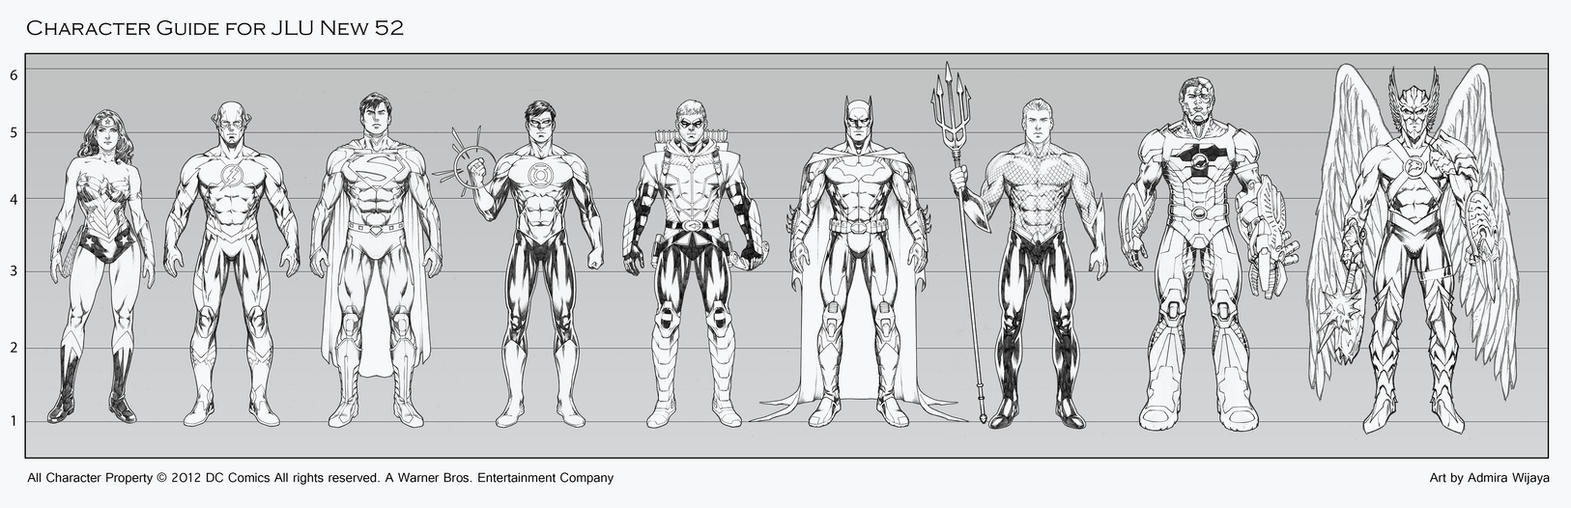 JLU Character Guide new 52 by AdmiraWijaya